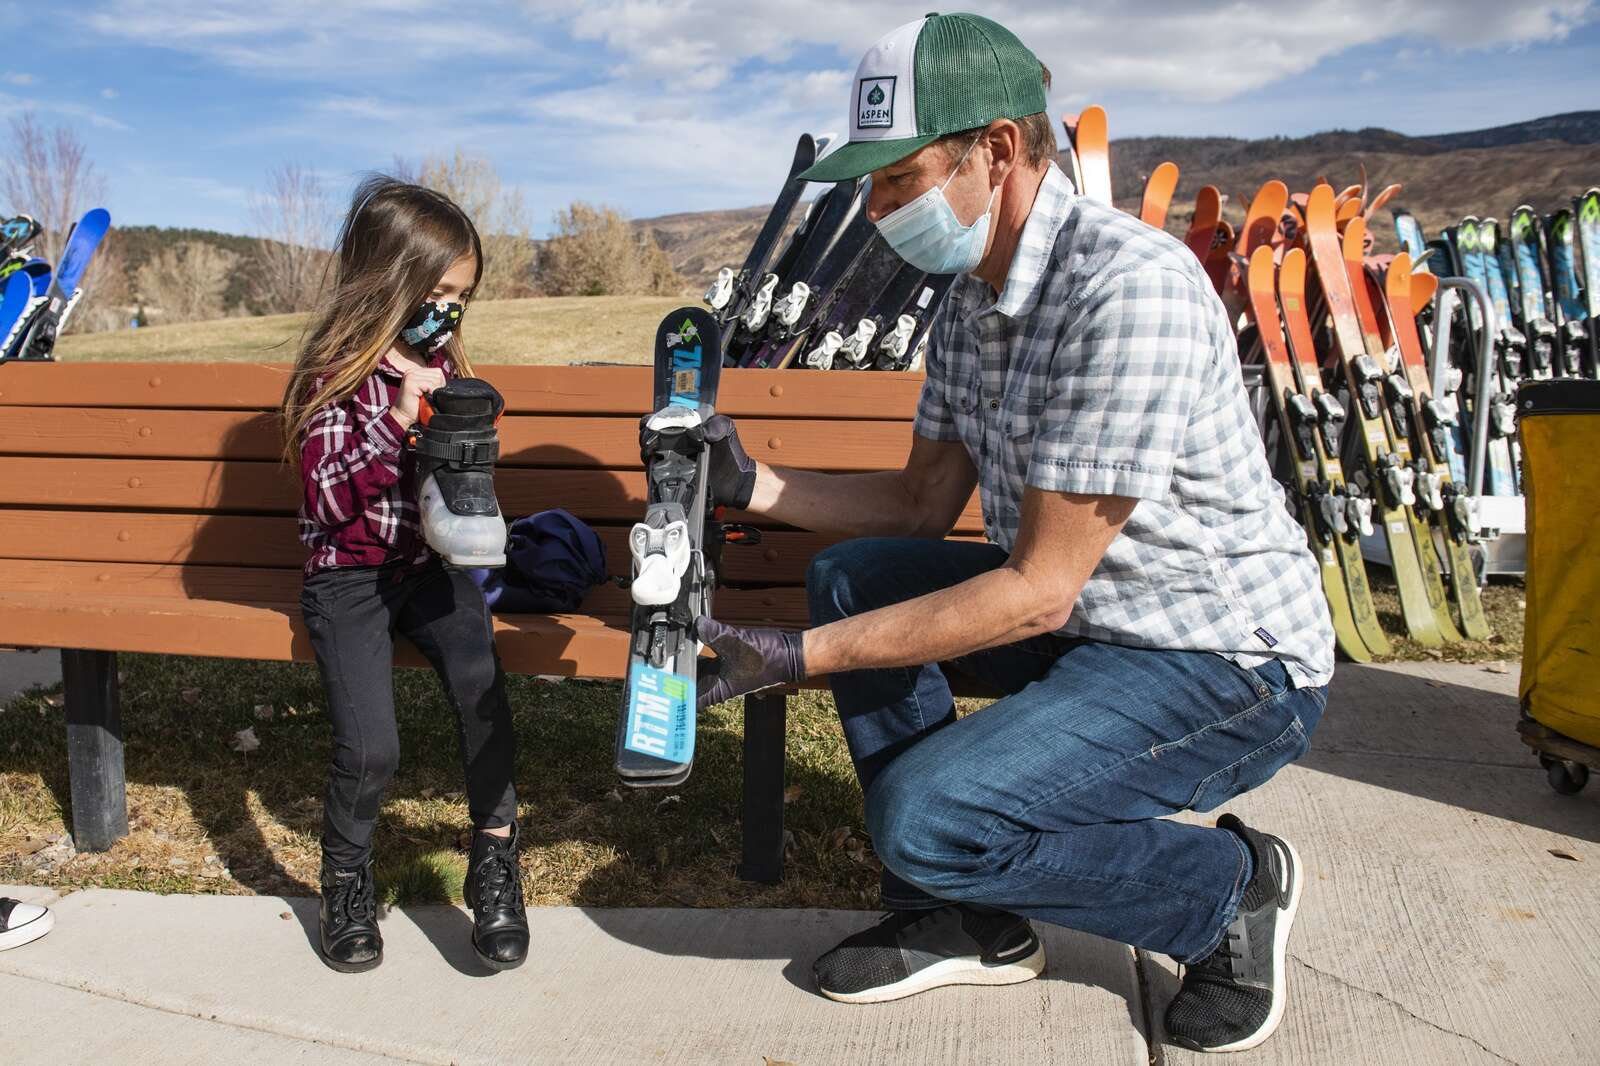 Chris Davenport hands Aliyah Rivera, 6, her new pair of skis provided by Gorsuch and AVSC during the annual equipment day held at Crown Mountain Park in El Jebel on Wednesday, Nov. 18, 2020. It makes me so happy to do something uplifting and positive, said Davenport about the day. (Kelsey Brunner/The Aspen Times)